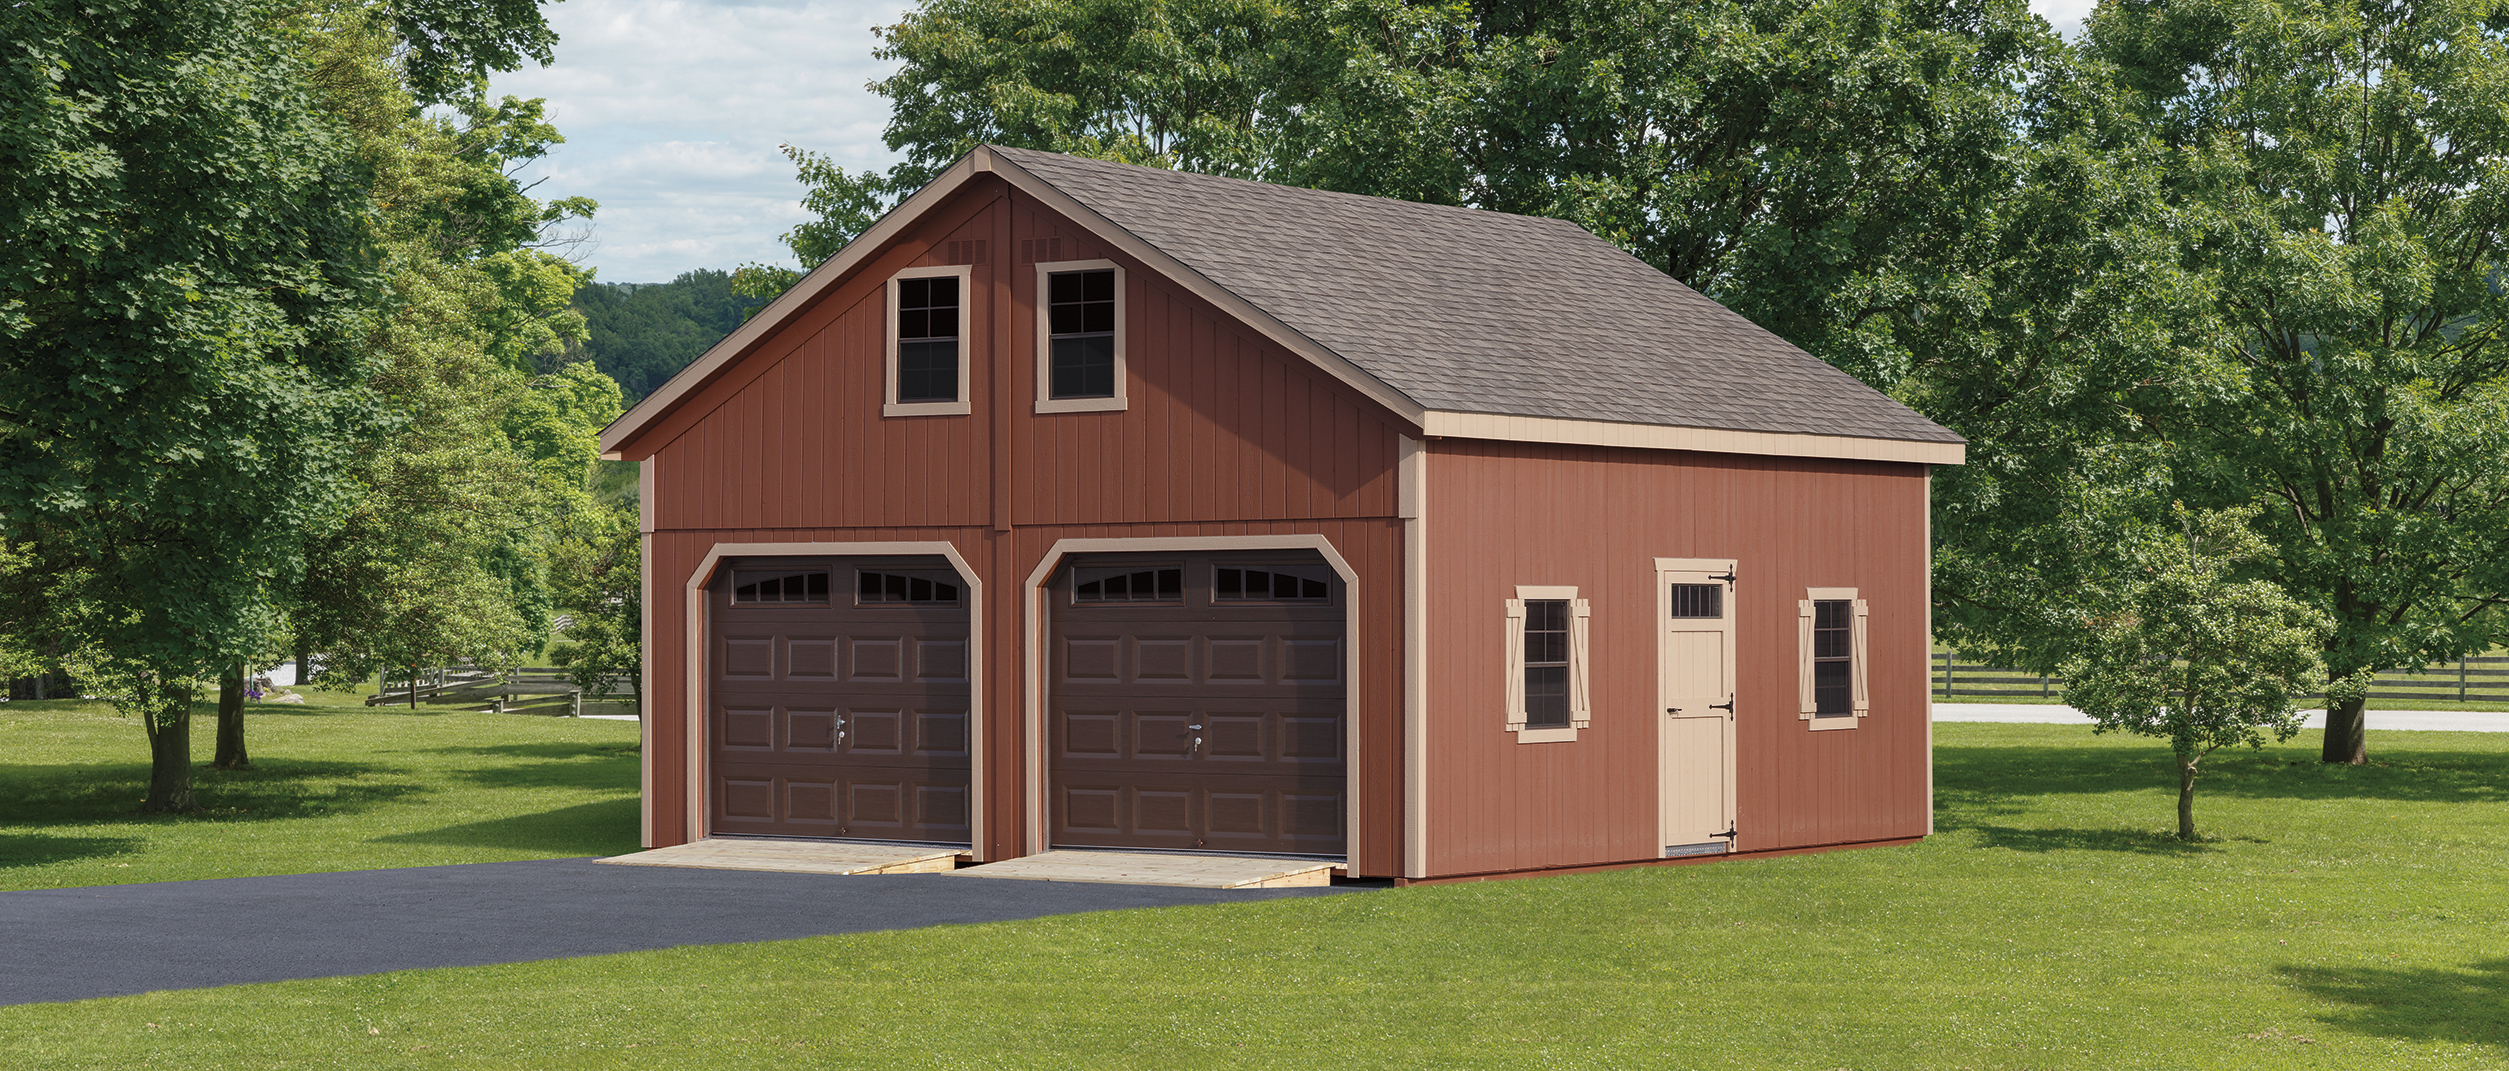 size car house design garages floor plans carriage full garage of apartment prices large modular